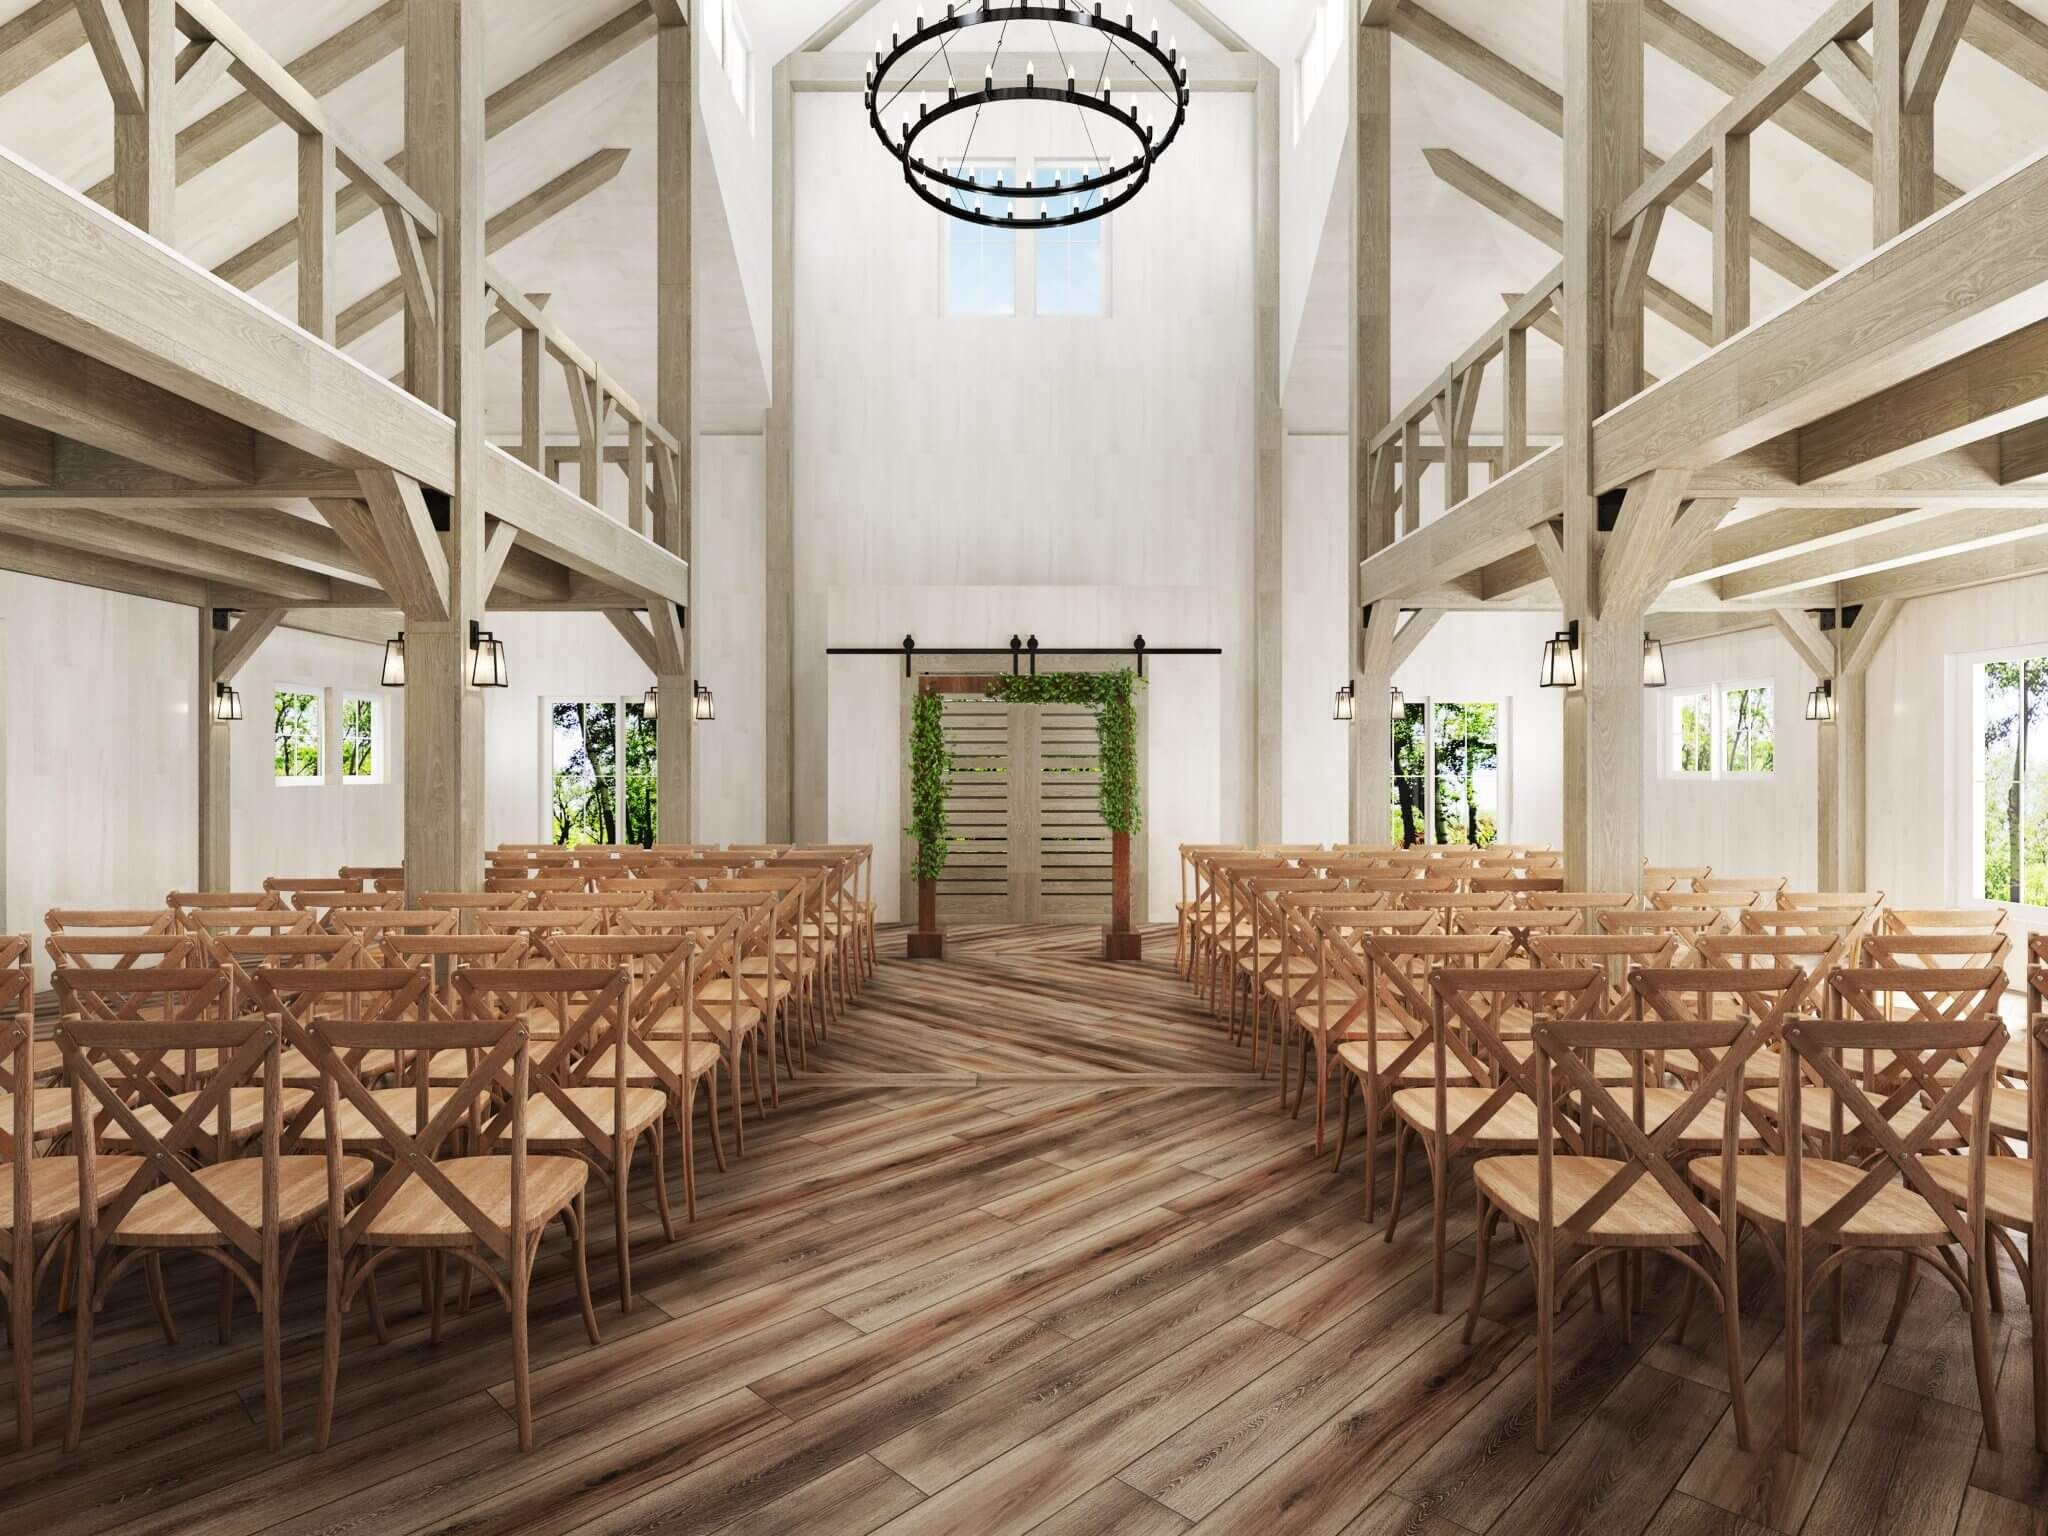 Gorgeous Light And Bright Indoor Rustic Barn Ceremony Farm Chairs Double Ring Industrial Ma Wedding Venues Massachusetts Wedding Venues Wedding Venues Indoor